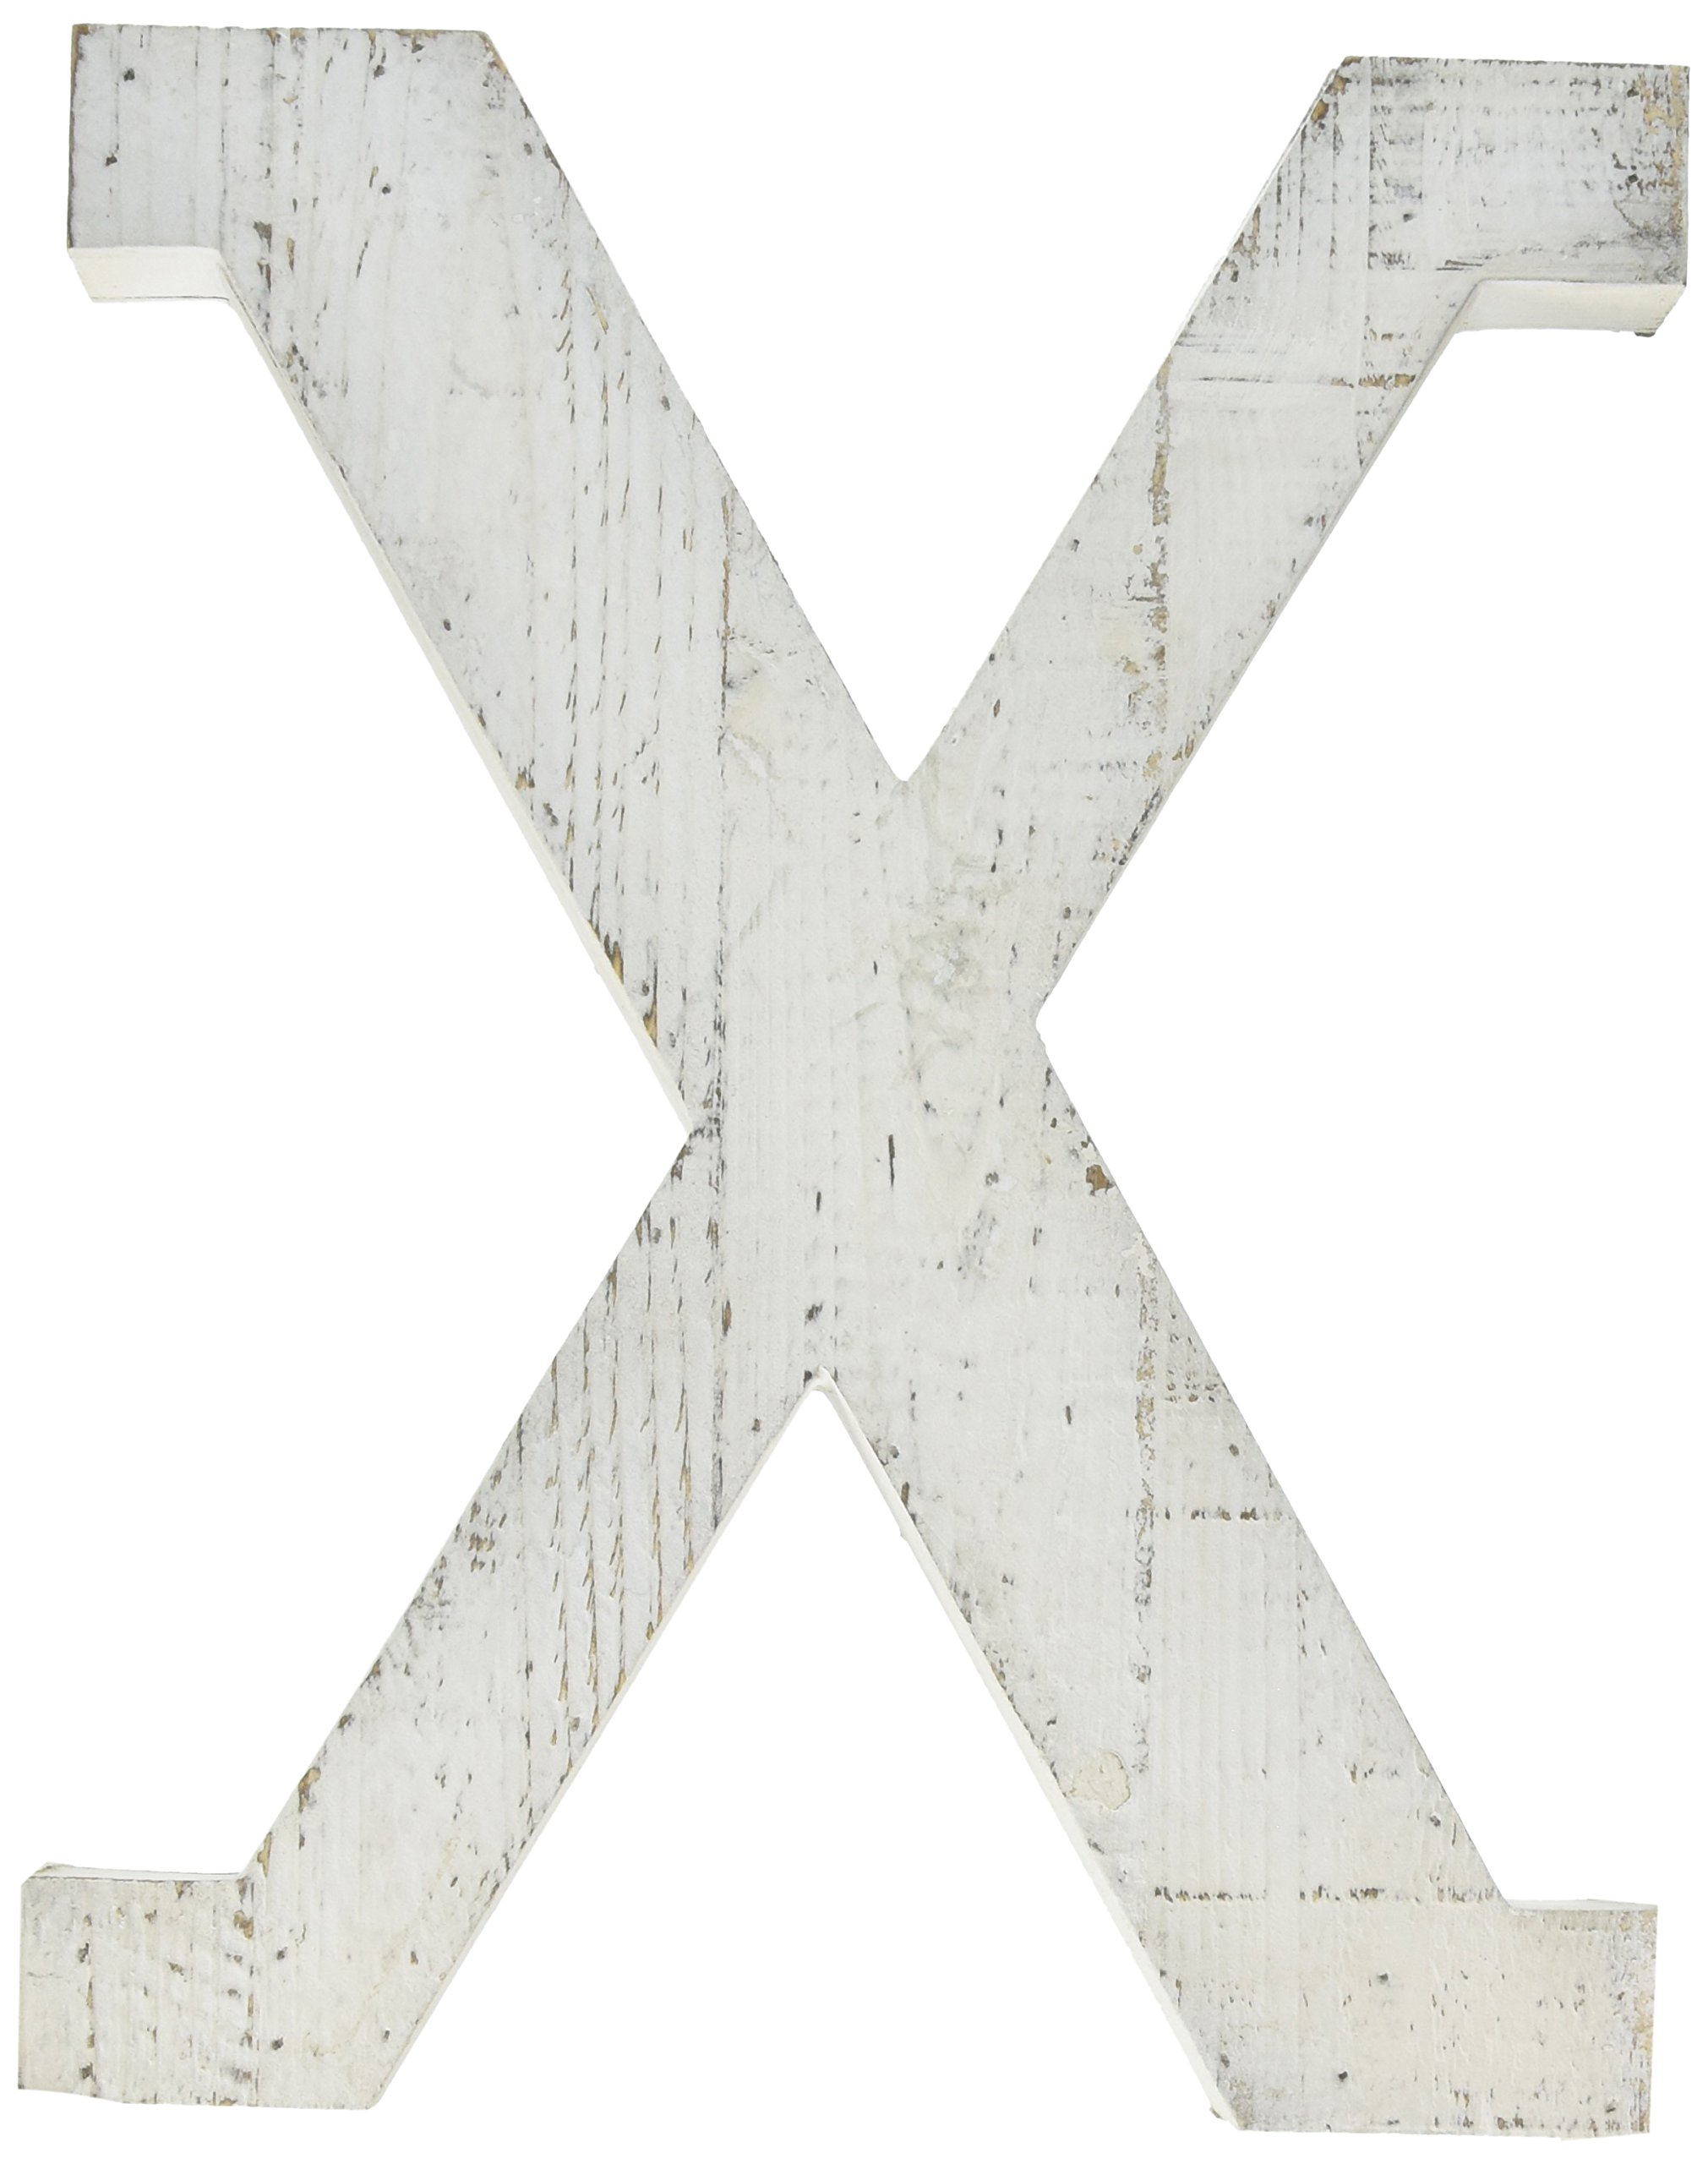 Adeco Wooden Hanging Wall Letters ''X'' - White Decorative Wall Letter of Living Room, Baby Name and Bedroom Decor, Whitewash by ADECO Trading